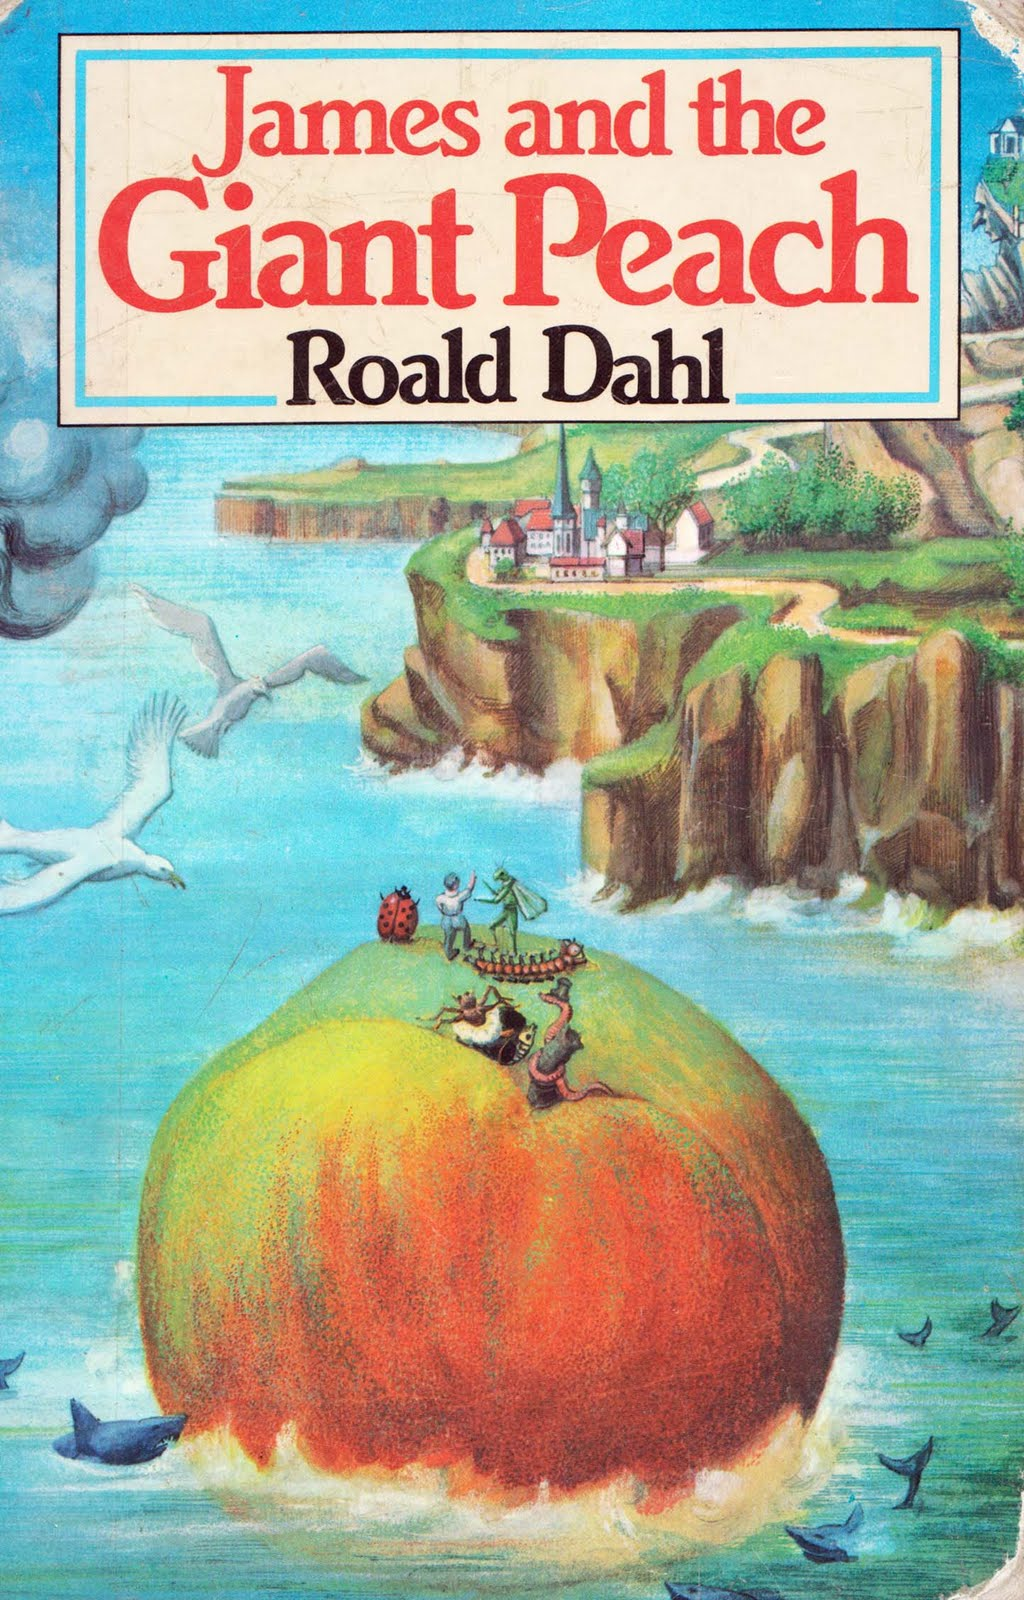 Vintage Kids Books My Kid Loves James And The Giant Peach